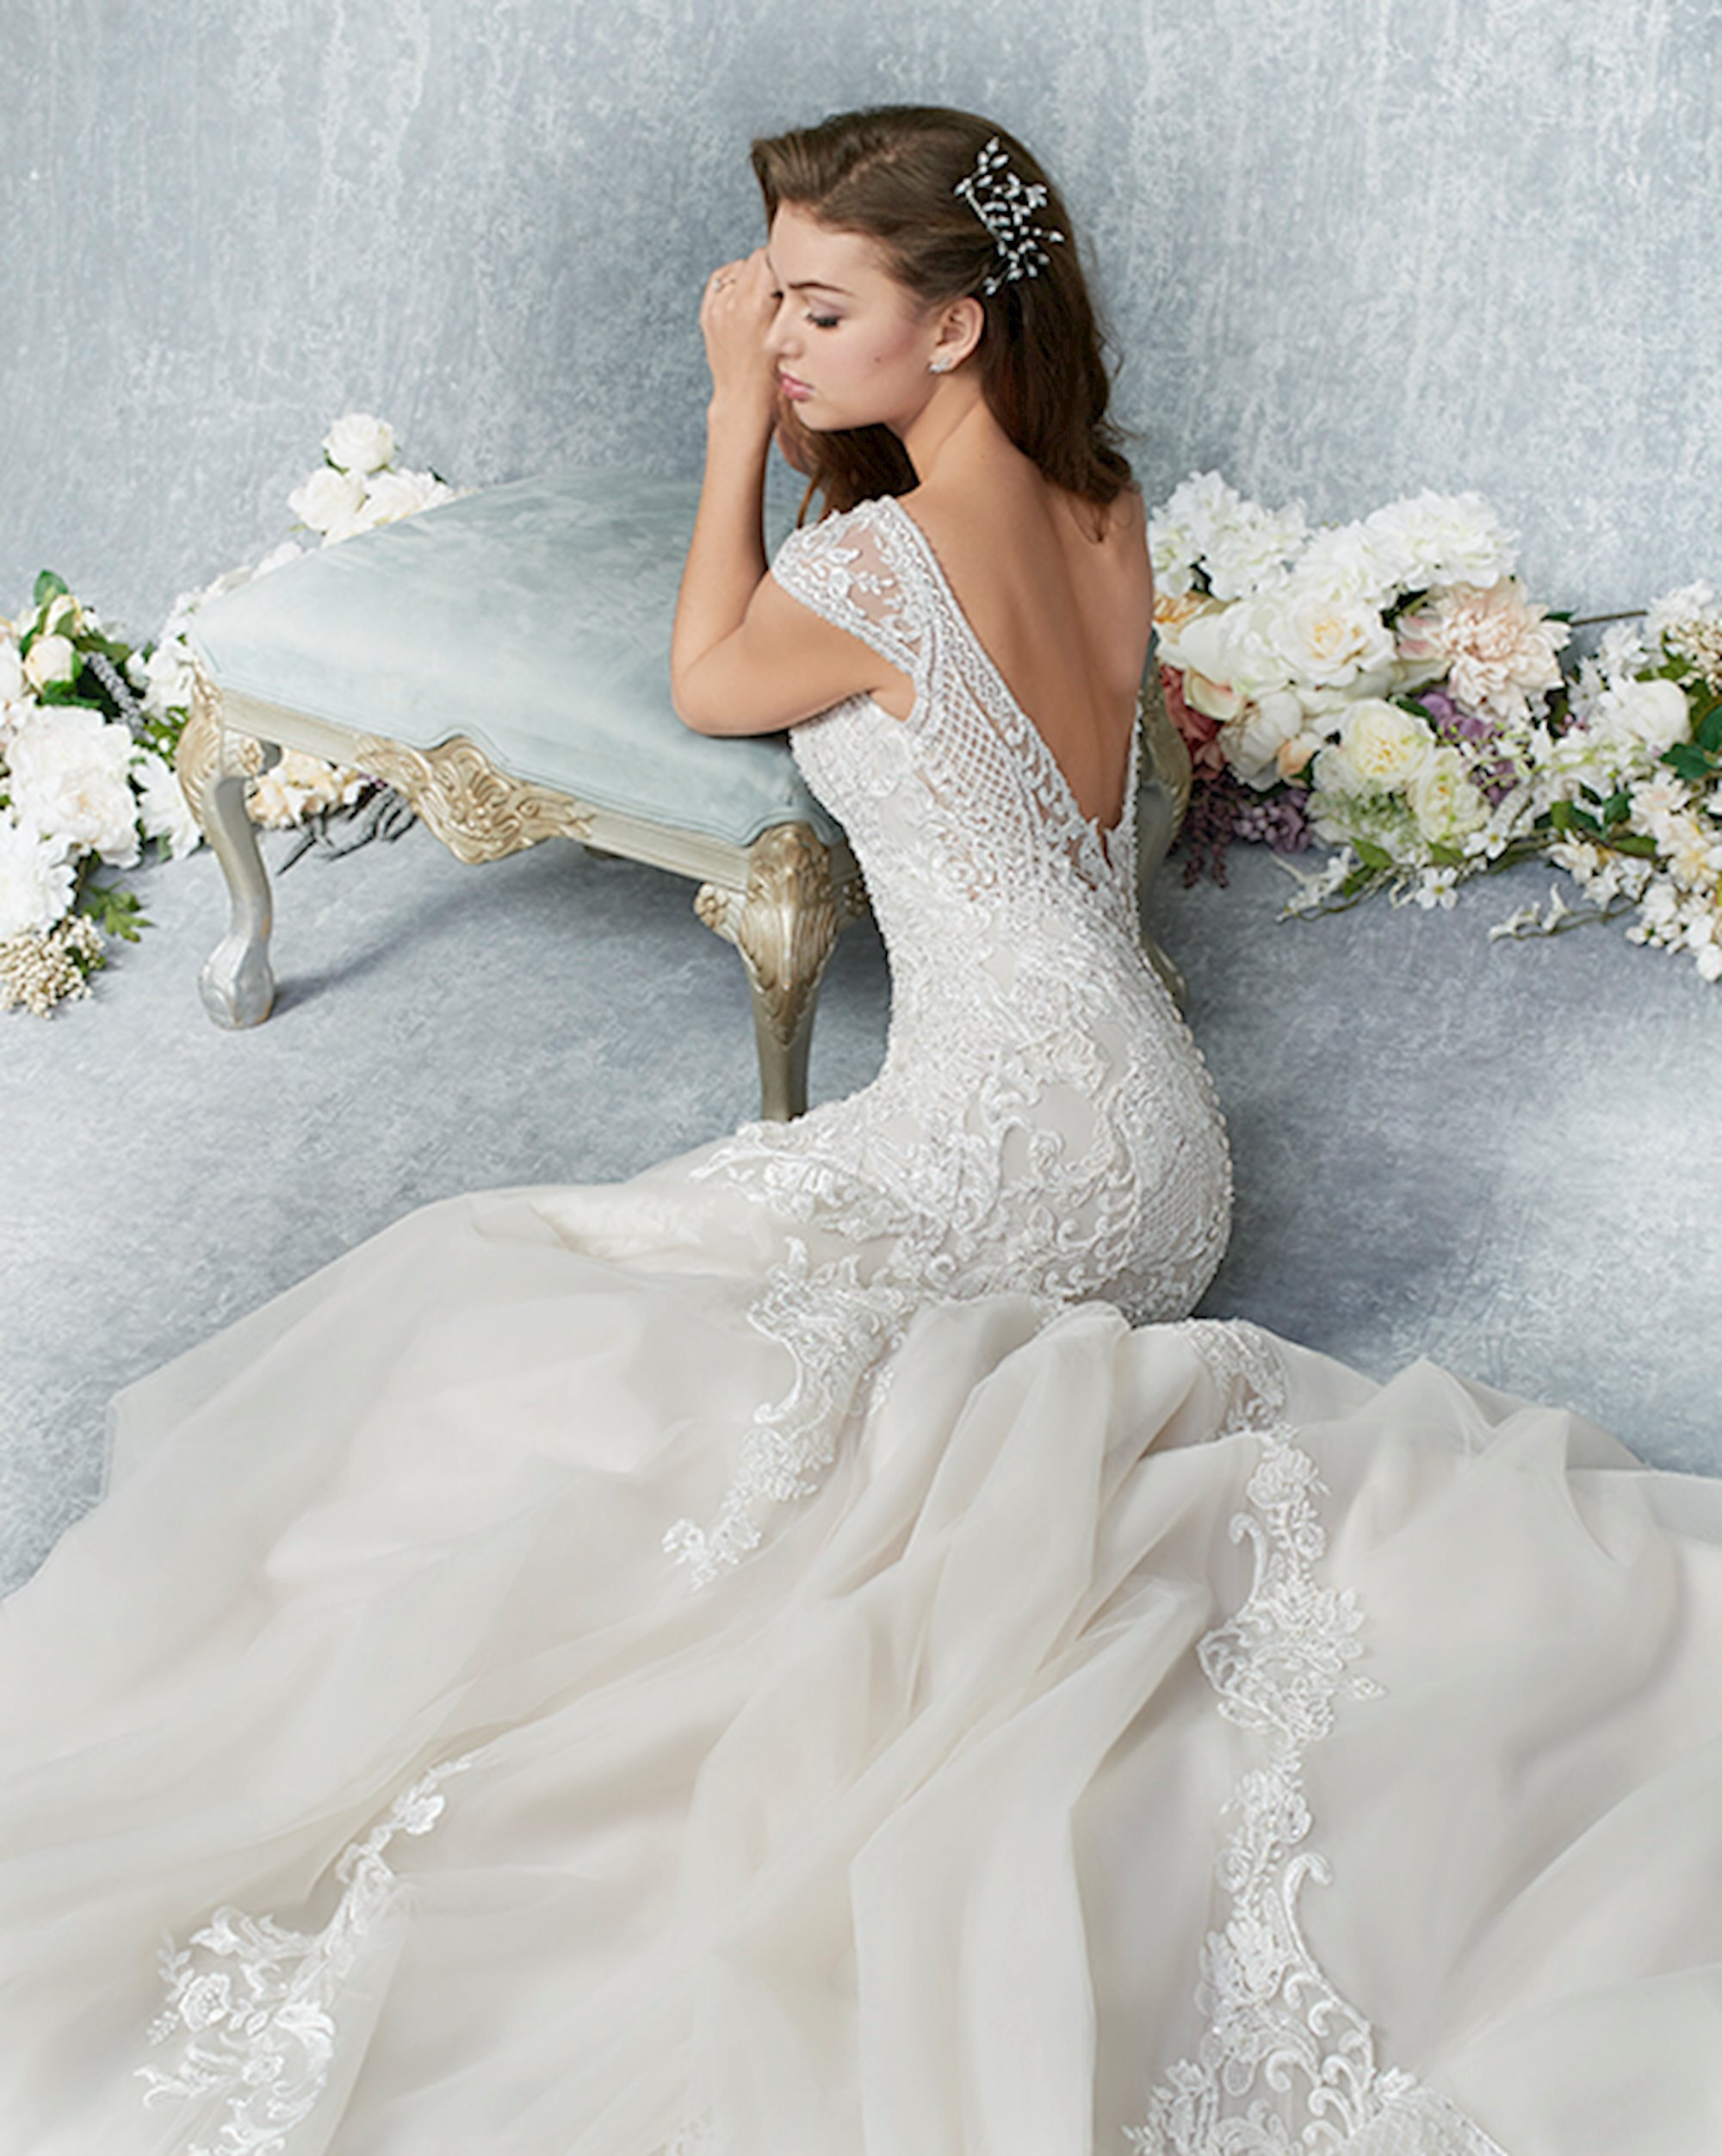 Kenneth Winston at Lilla's Bridal Boutique in York, PA